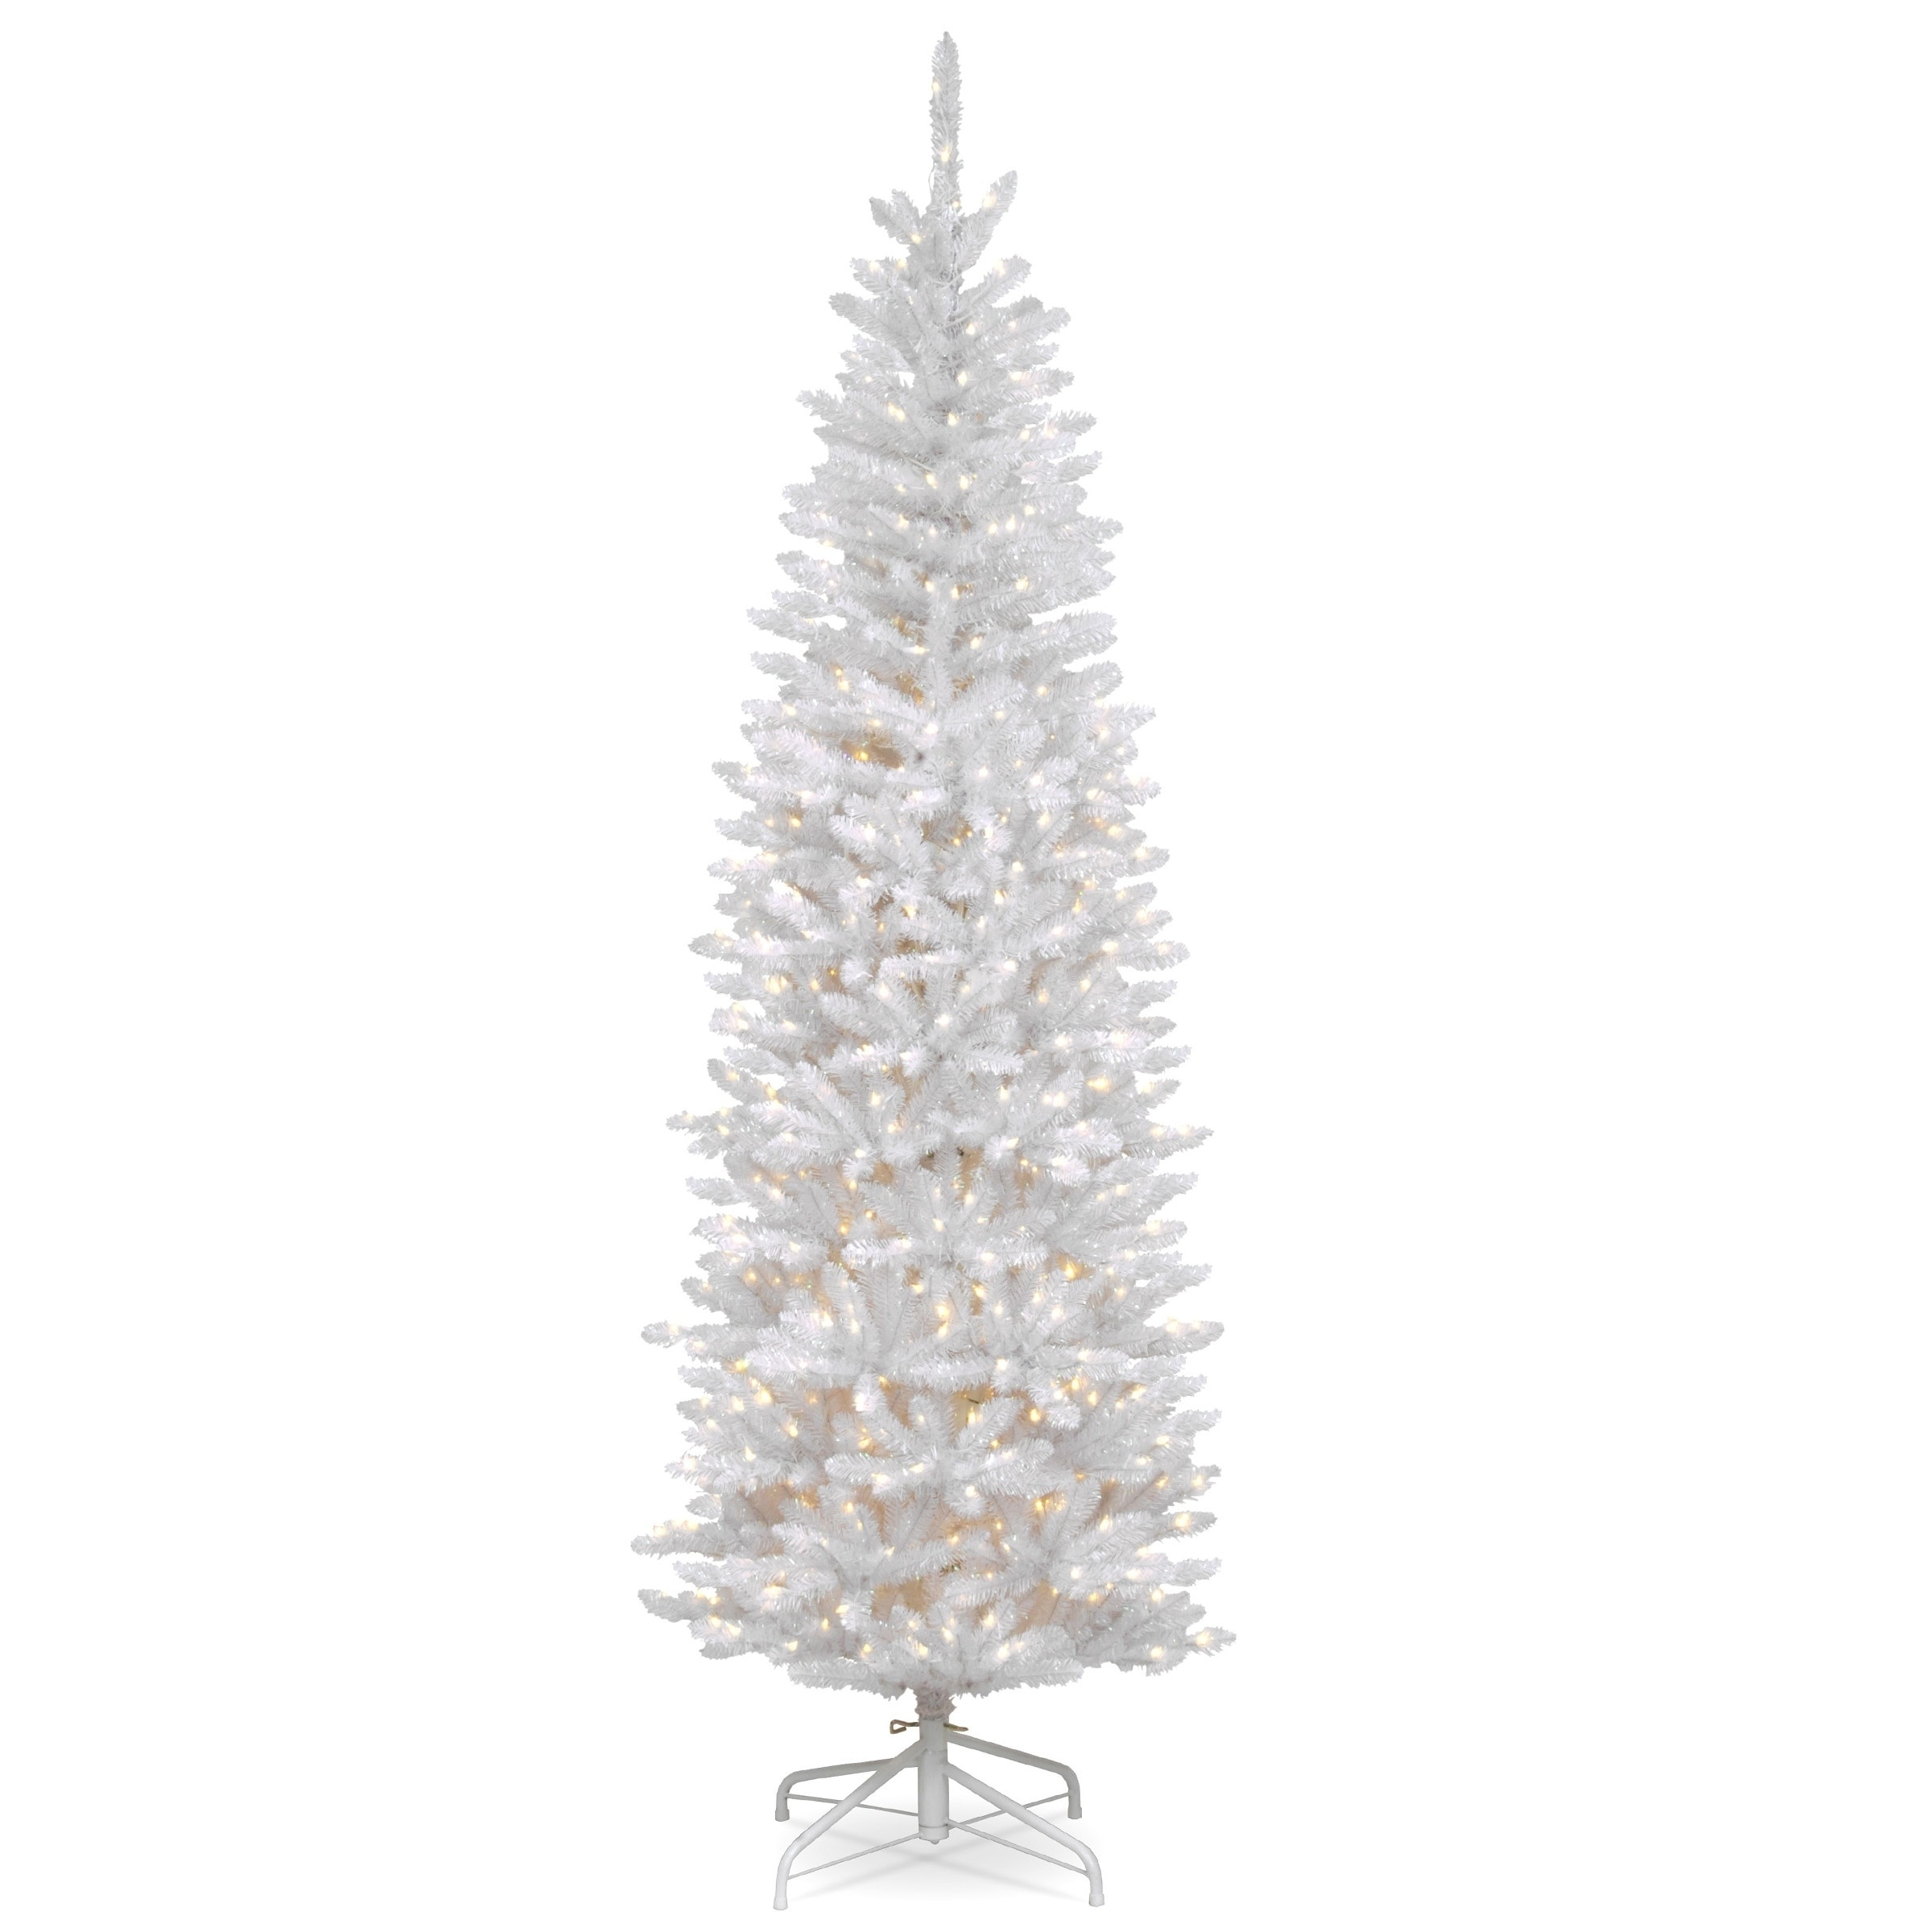 Christmas Tree White Lights.7 5 Ft Kingswood White Fir Pencil Tree With Clear Lights